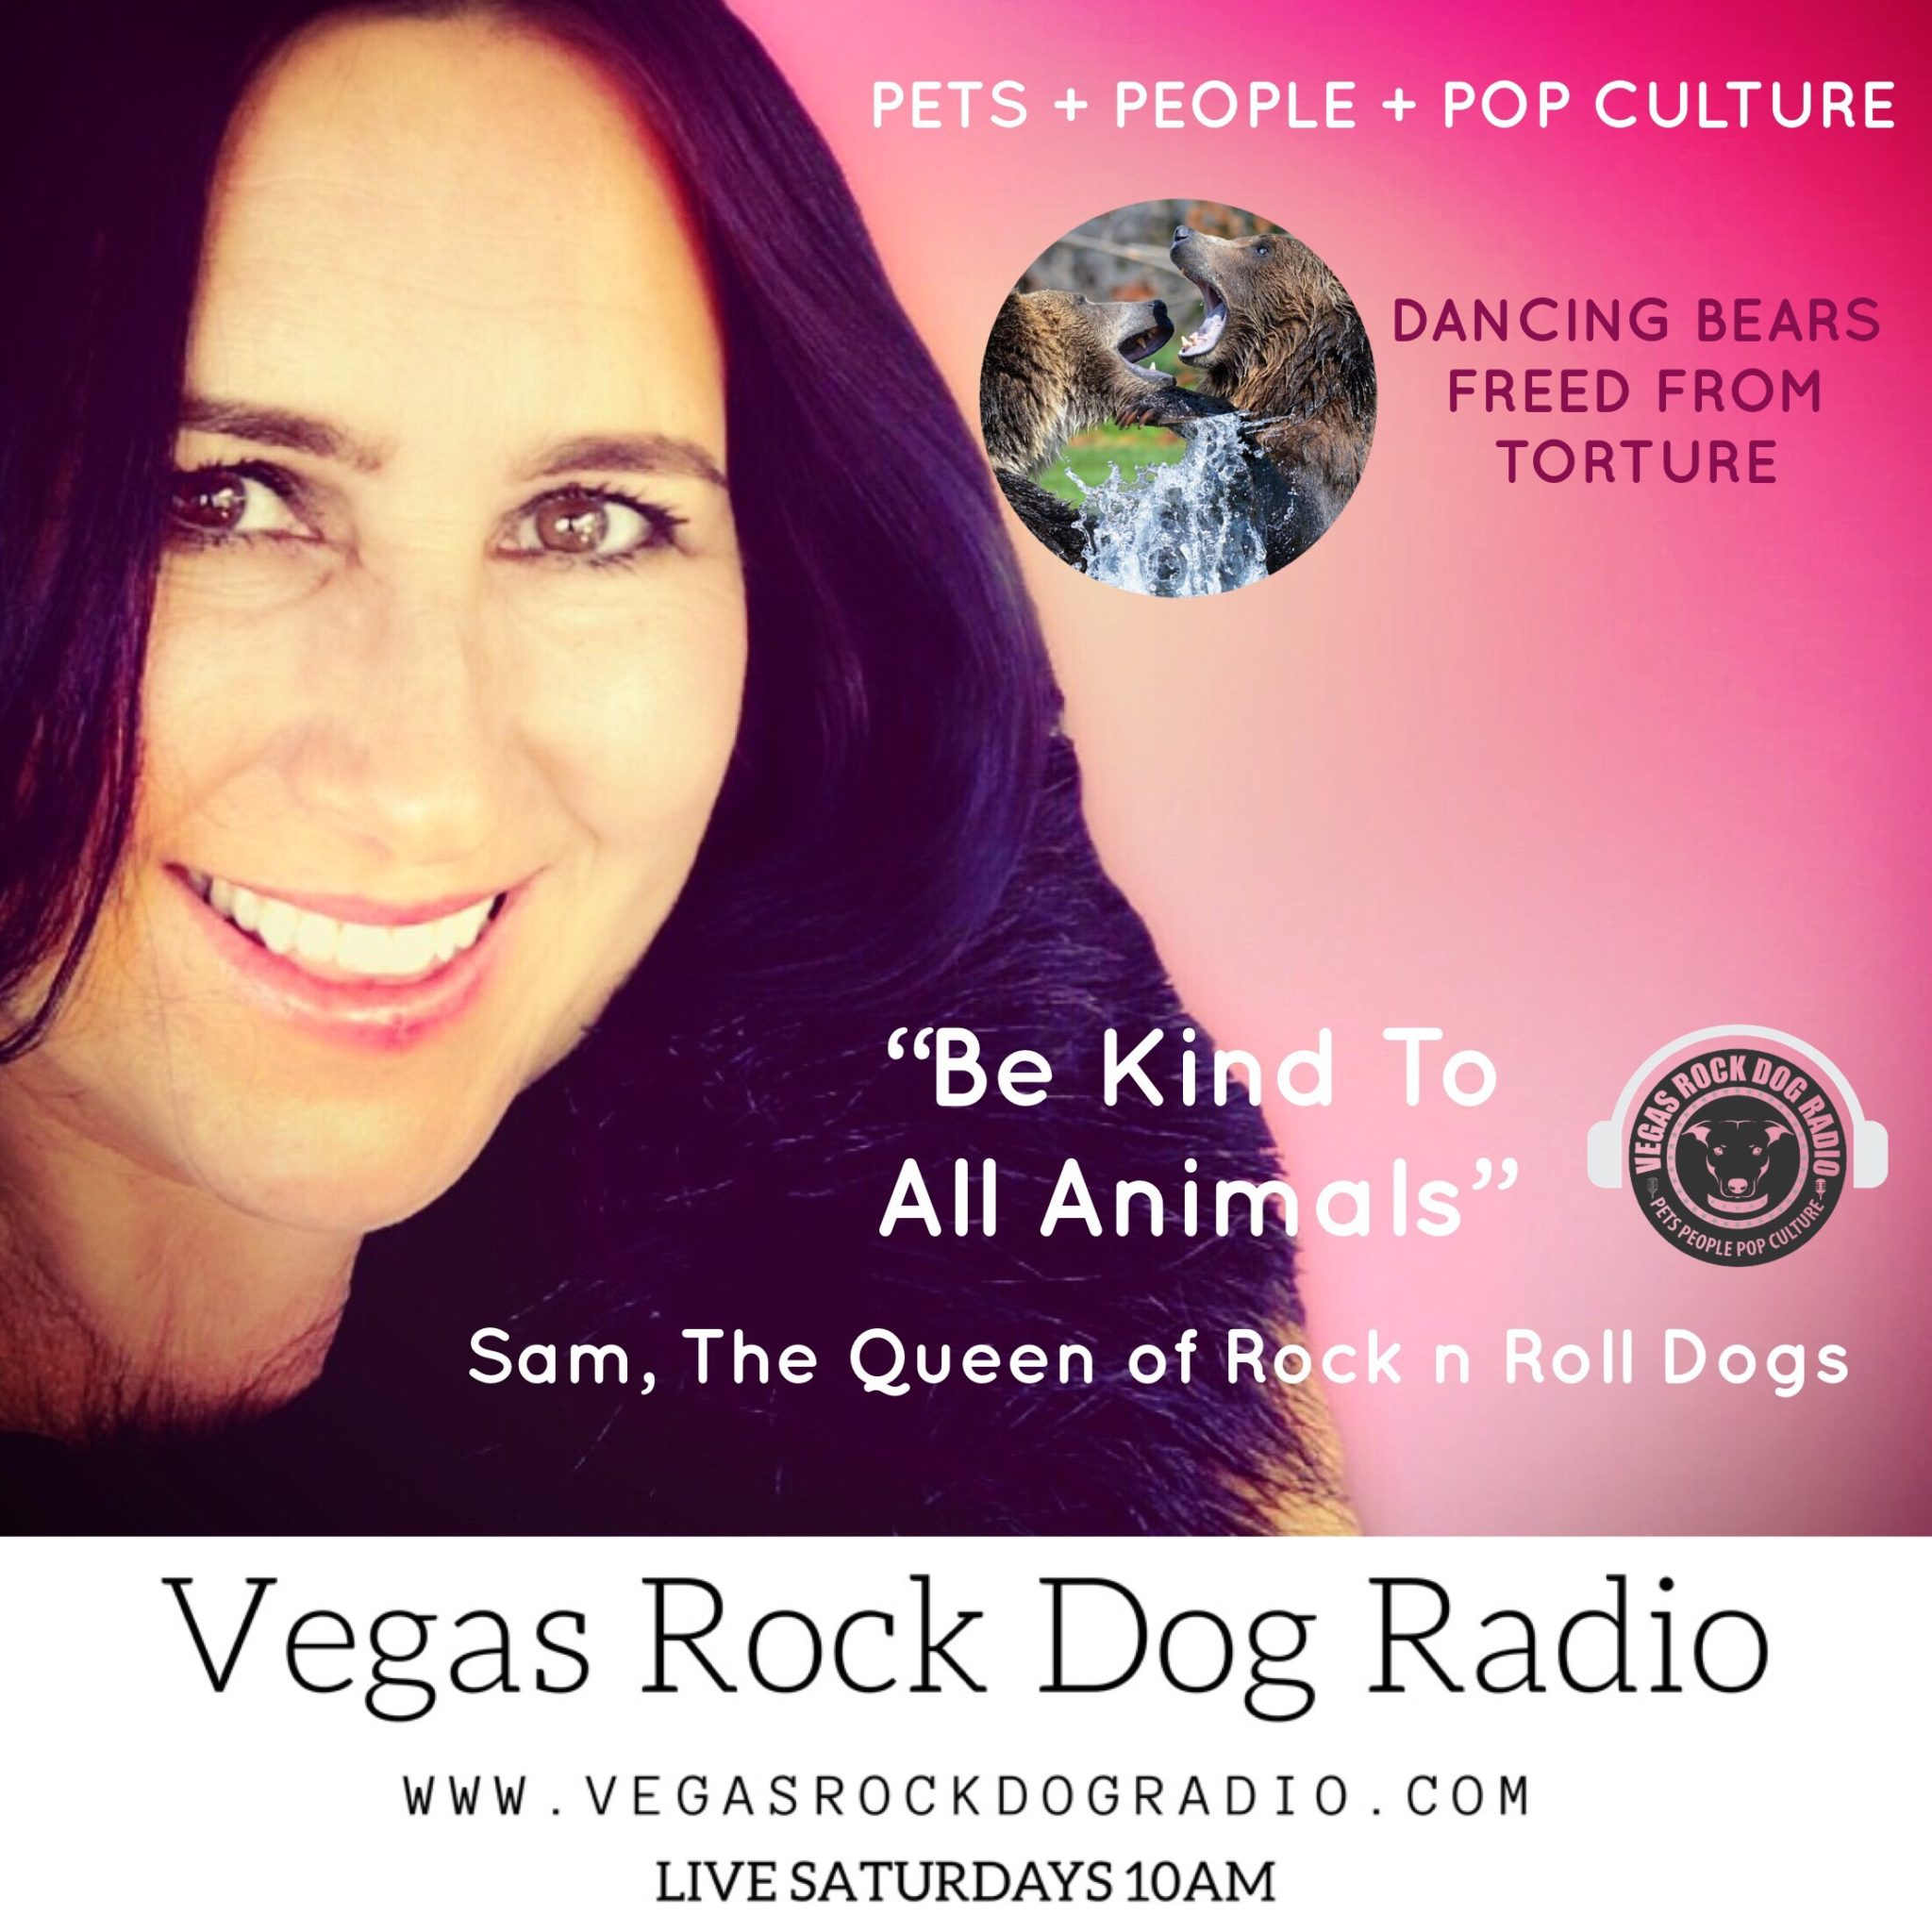 Vegas Rock Dog Radio Dancing bears freed from torture